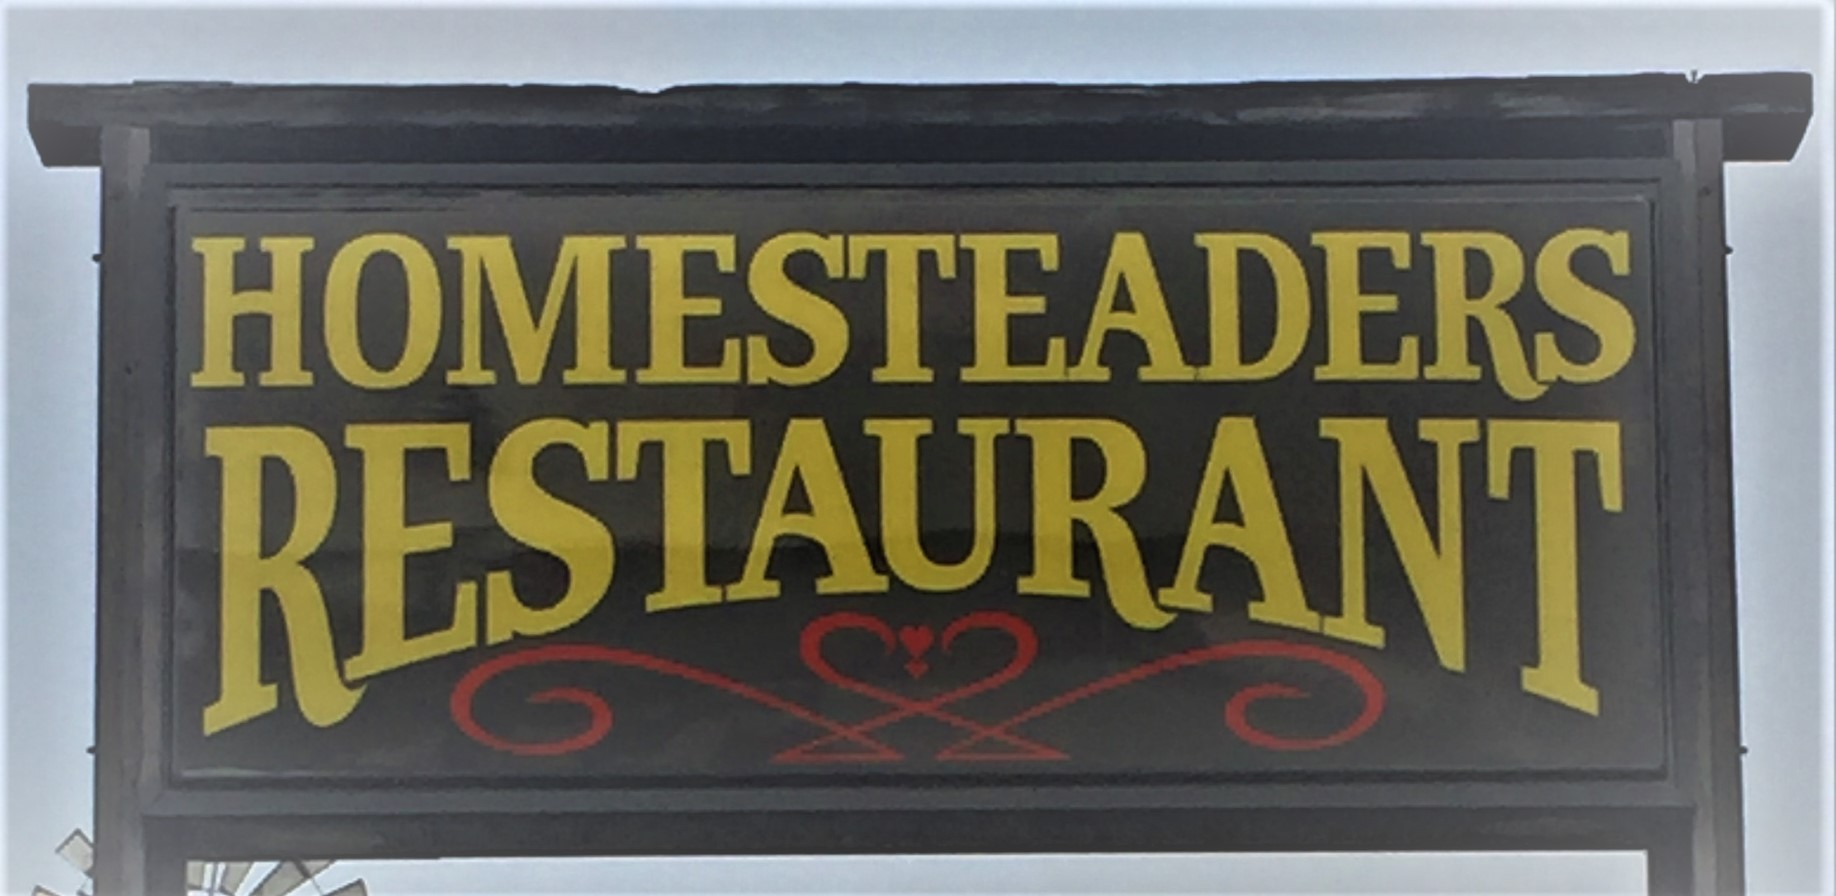 Homesteaders Restaurant